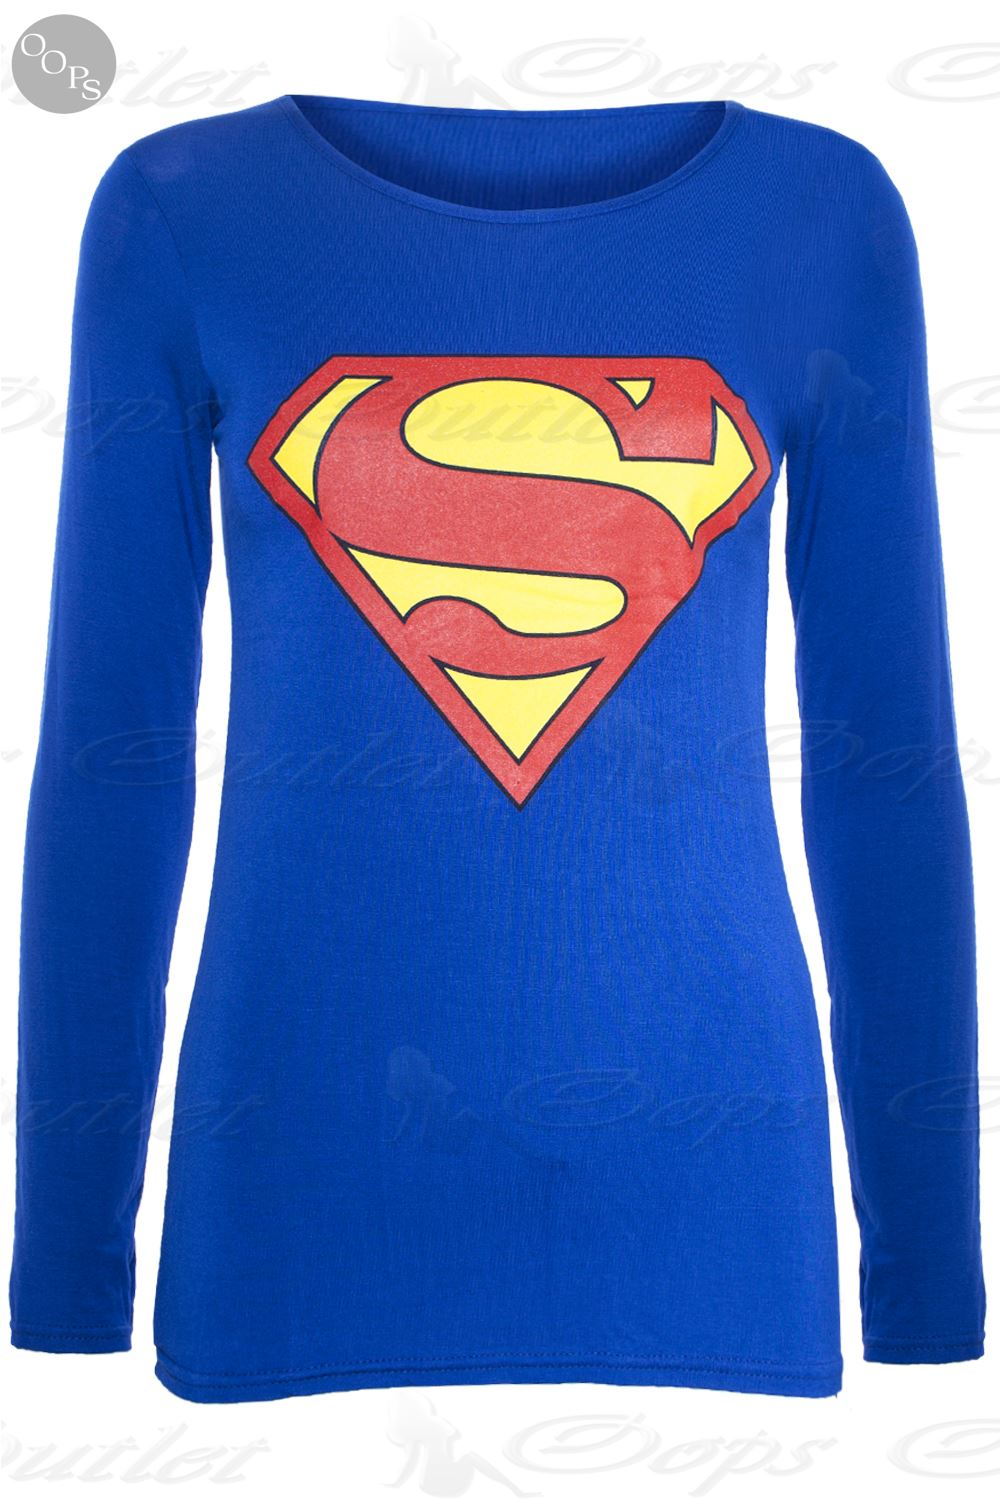 womens ladies superman batman cap long sleeves t shirt sweatshirt hoodies tops ebay. Black Bedroom Furniture Sets. Home Design Ideas